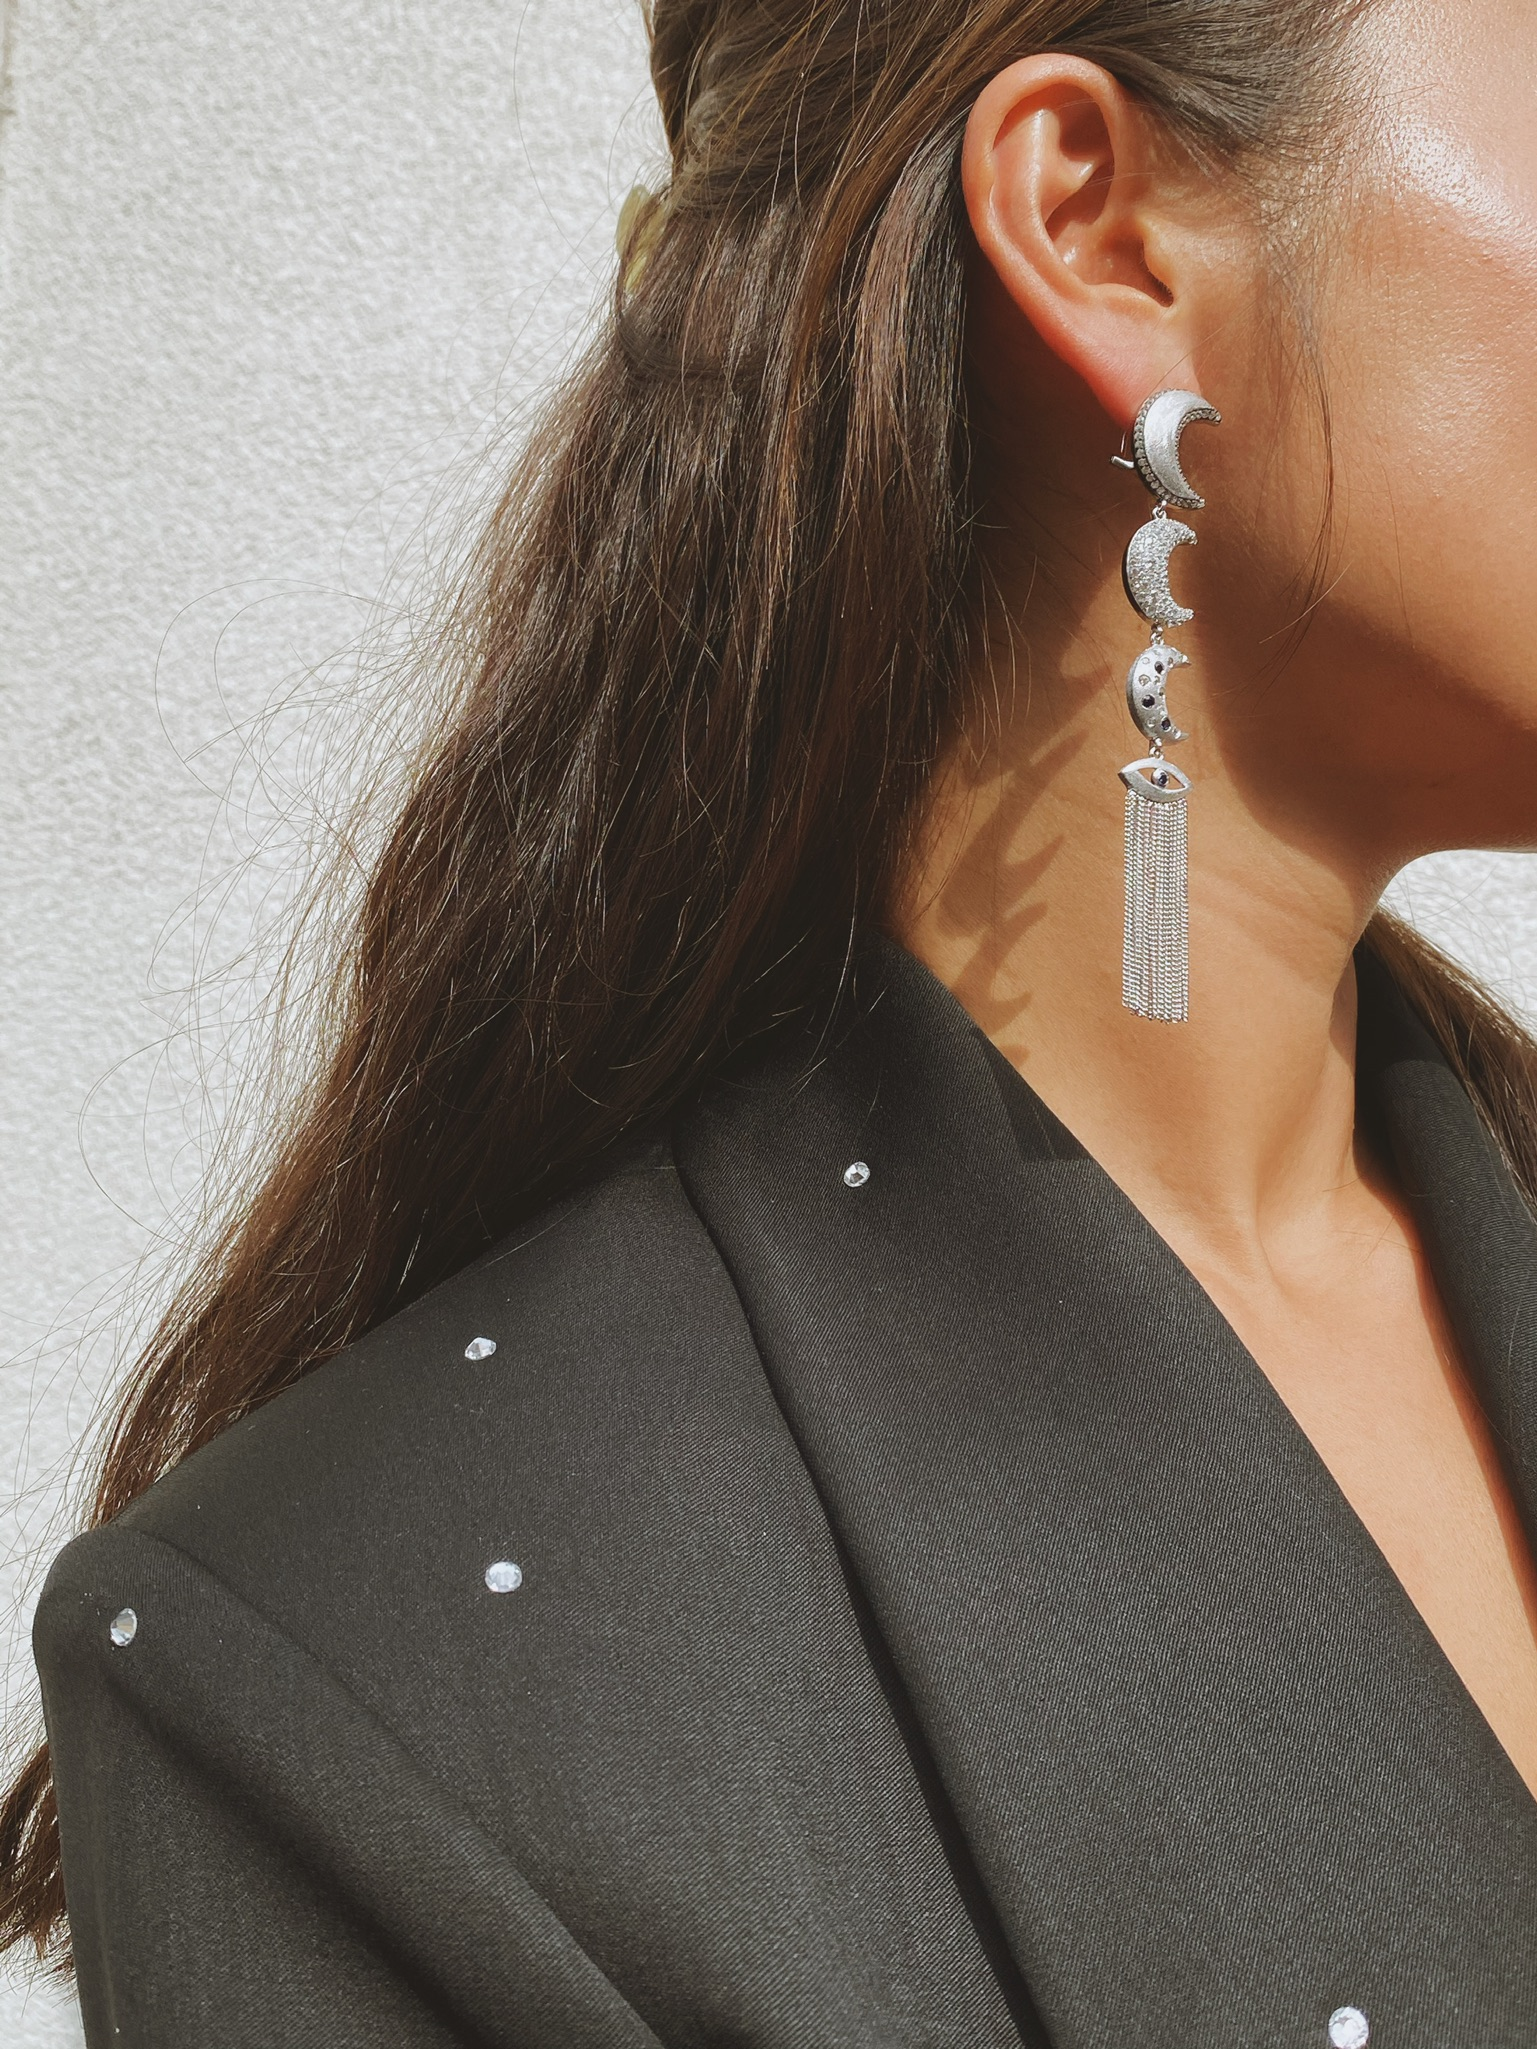 Linear Moons Earrings with Evil Eye Tassels by AMMANII on curated-crowd.com